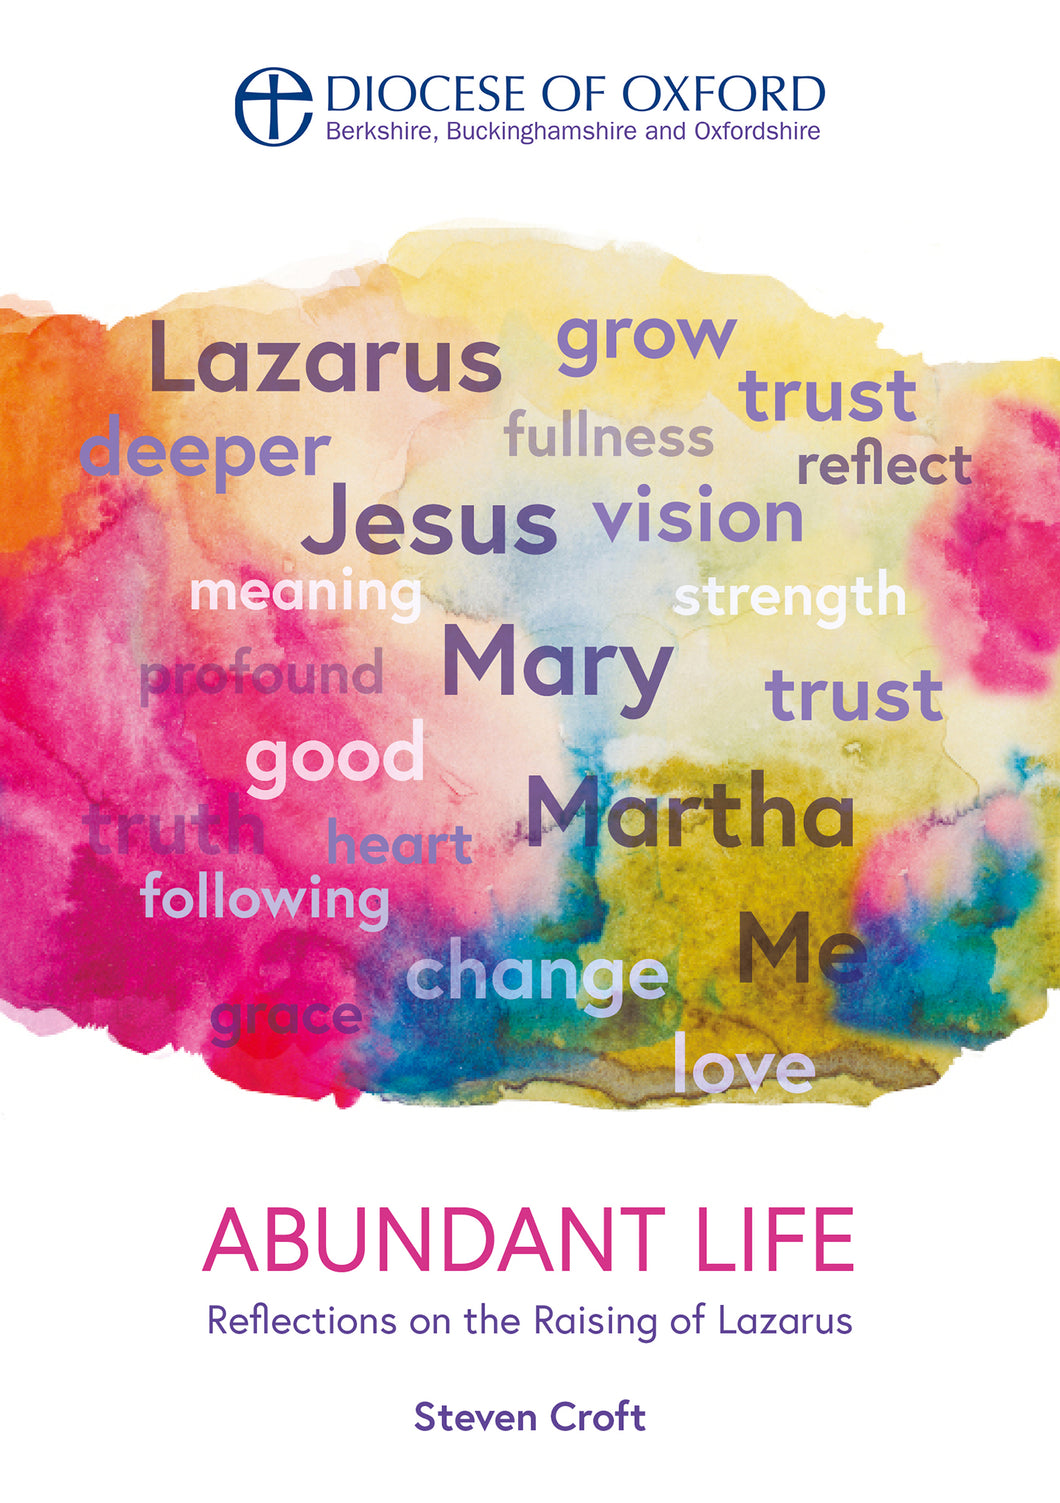 Front cover of Abundant Life, written by the Rt Rev Dr Steven Croft